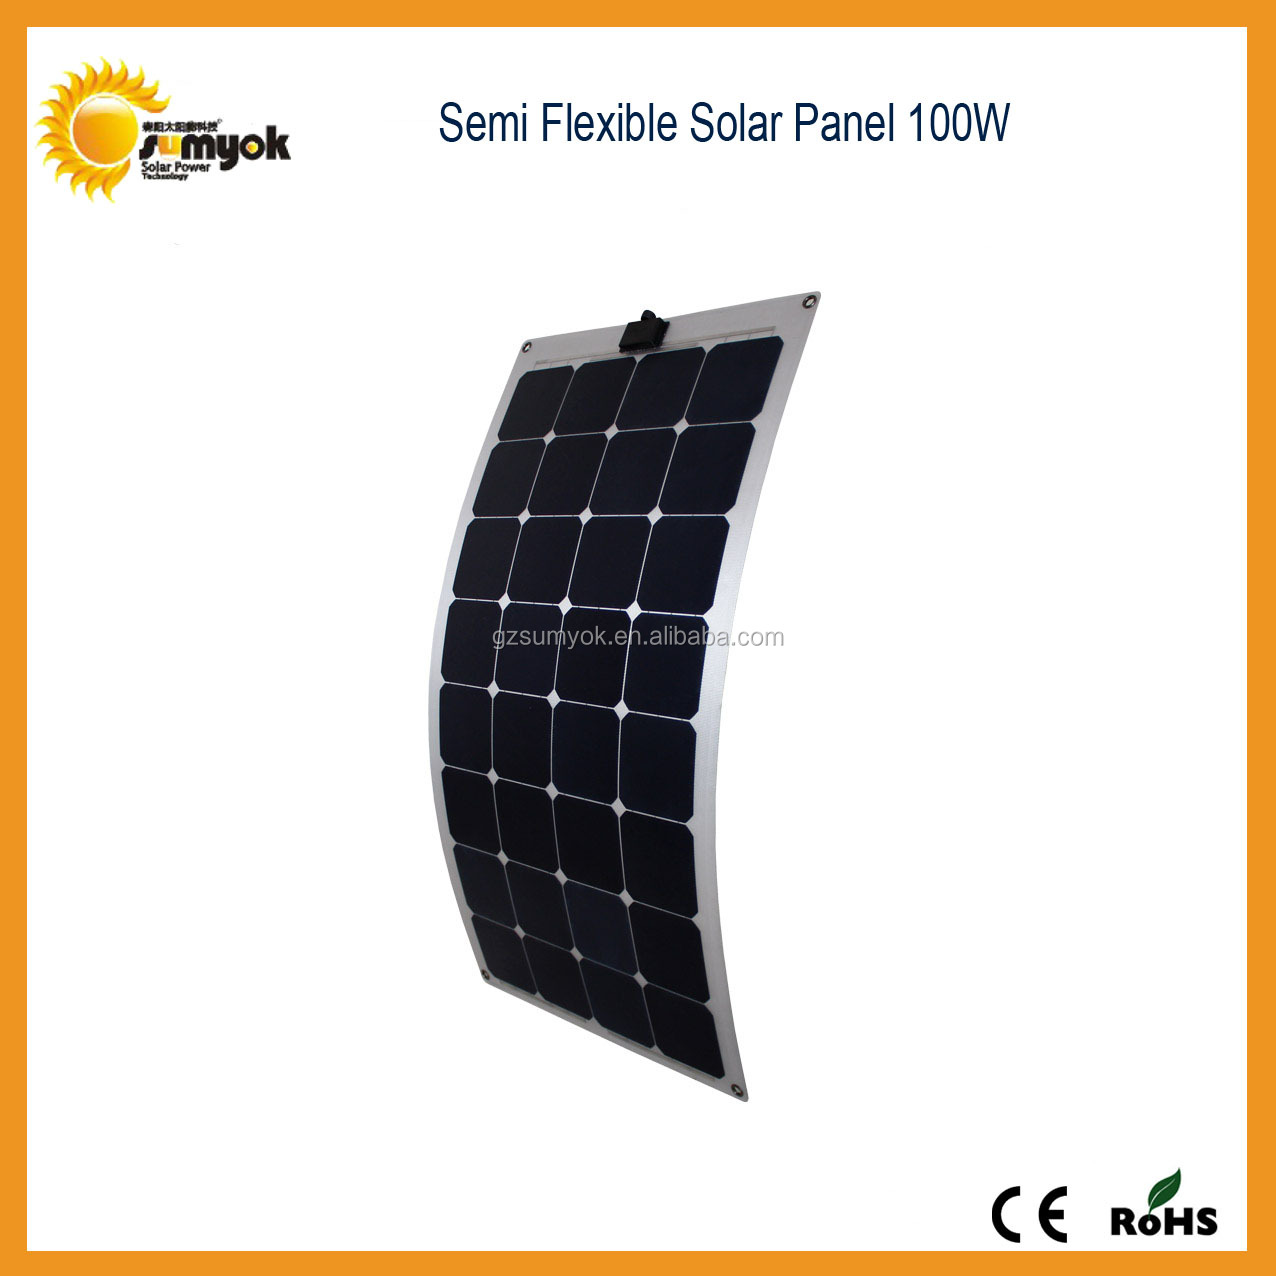 100w waterproof flexible solar panel china ,perfect to use on yachat ,car,boat,snow mobile,golf-cart..etc